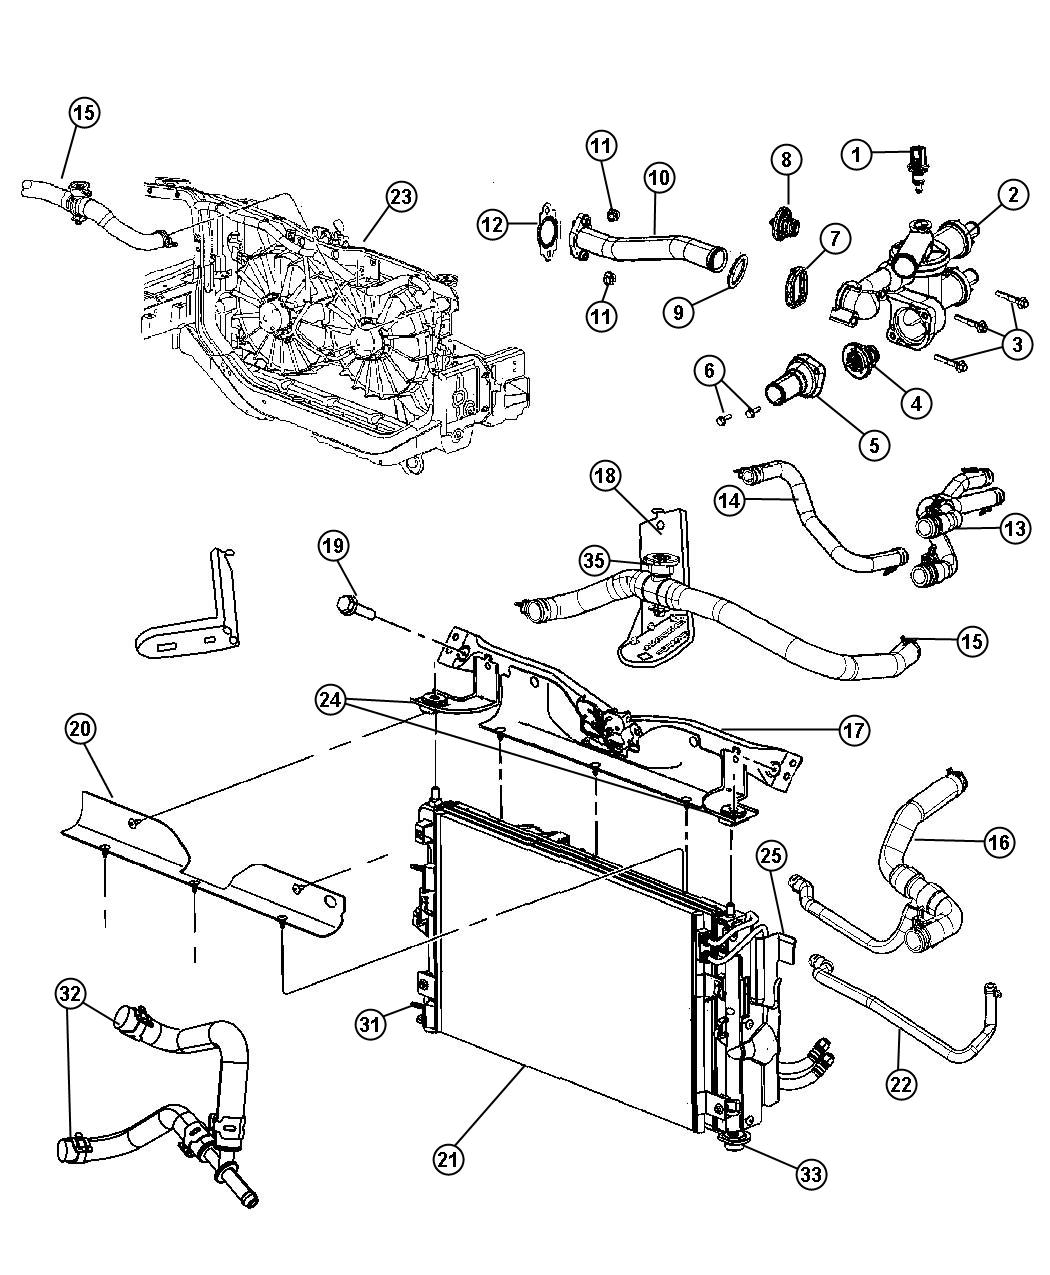 4 7 Engine Timing Chain Diagram Free Wiring For You 2007 Jeep Patriot Diagrams 2 4l Imageresizertool Com Tundra 47 2002 Dodge Intrepid